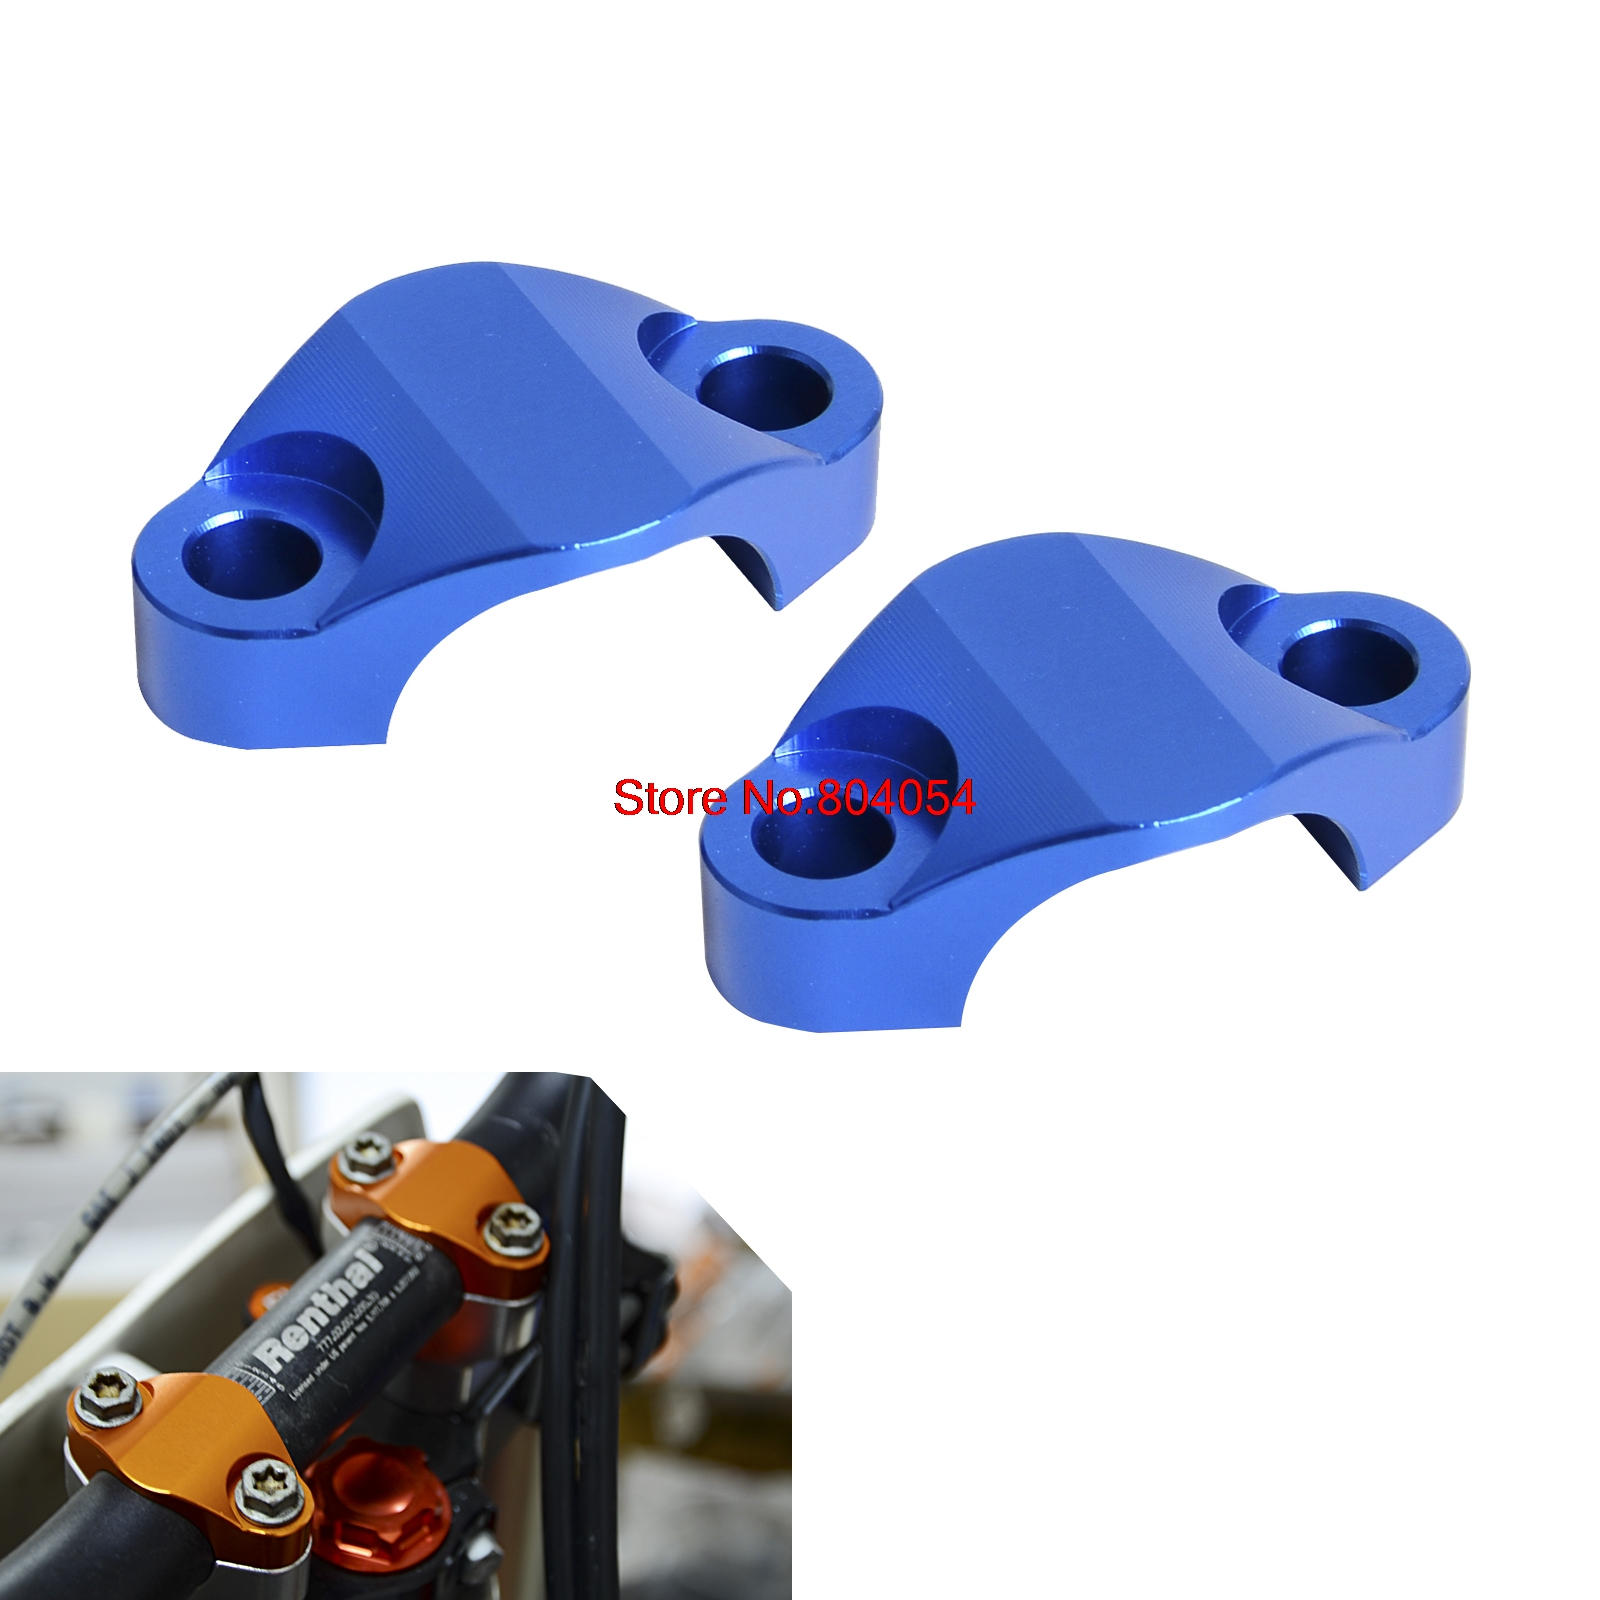 28mm CNC Billet Handlebar Clamp For KTM 85 105 125 150 200 250 300 350 400 450 500 525 530 Freeride SX XC EXC SXF XCF XCW SMR billet axle blocks chain adjuster for ktm 125 150 200 250 300 350 400 450 500 505 525 530 exc exc f xc w xcw xcf w 2000 2015